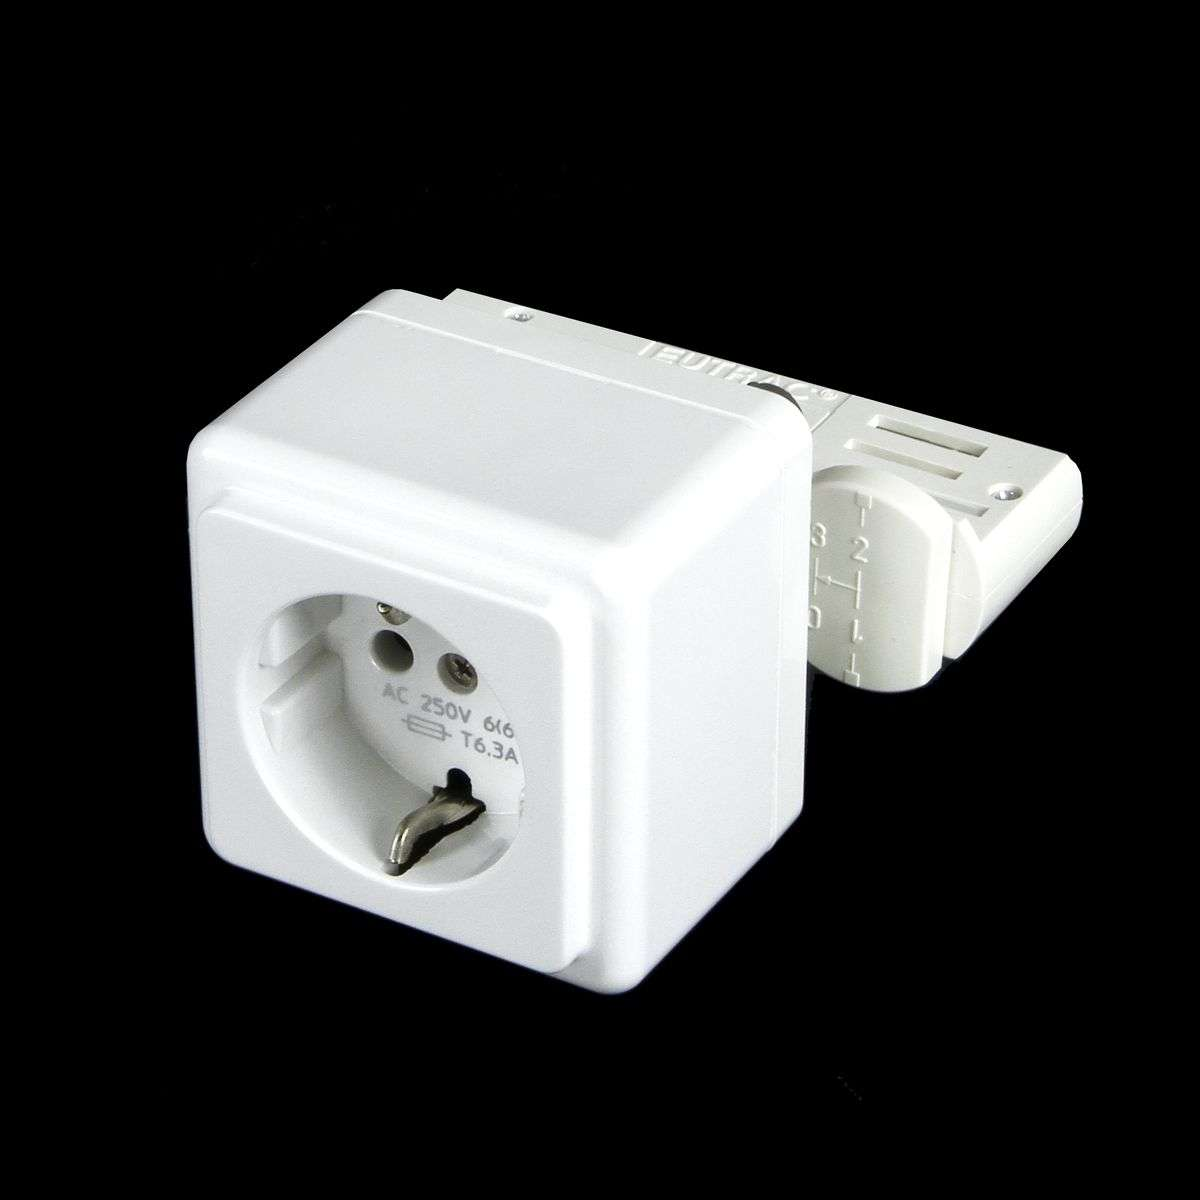 Power point multi-adapter for track system-1002371-31